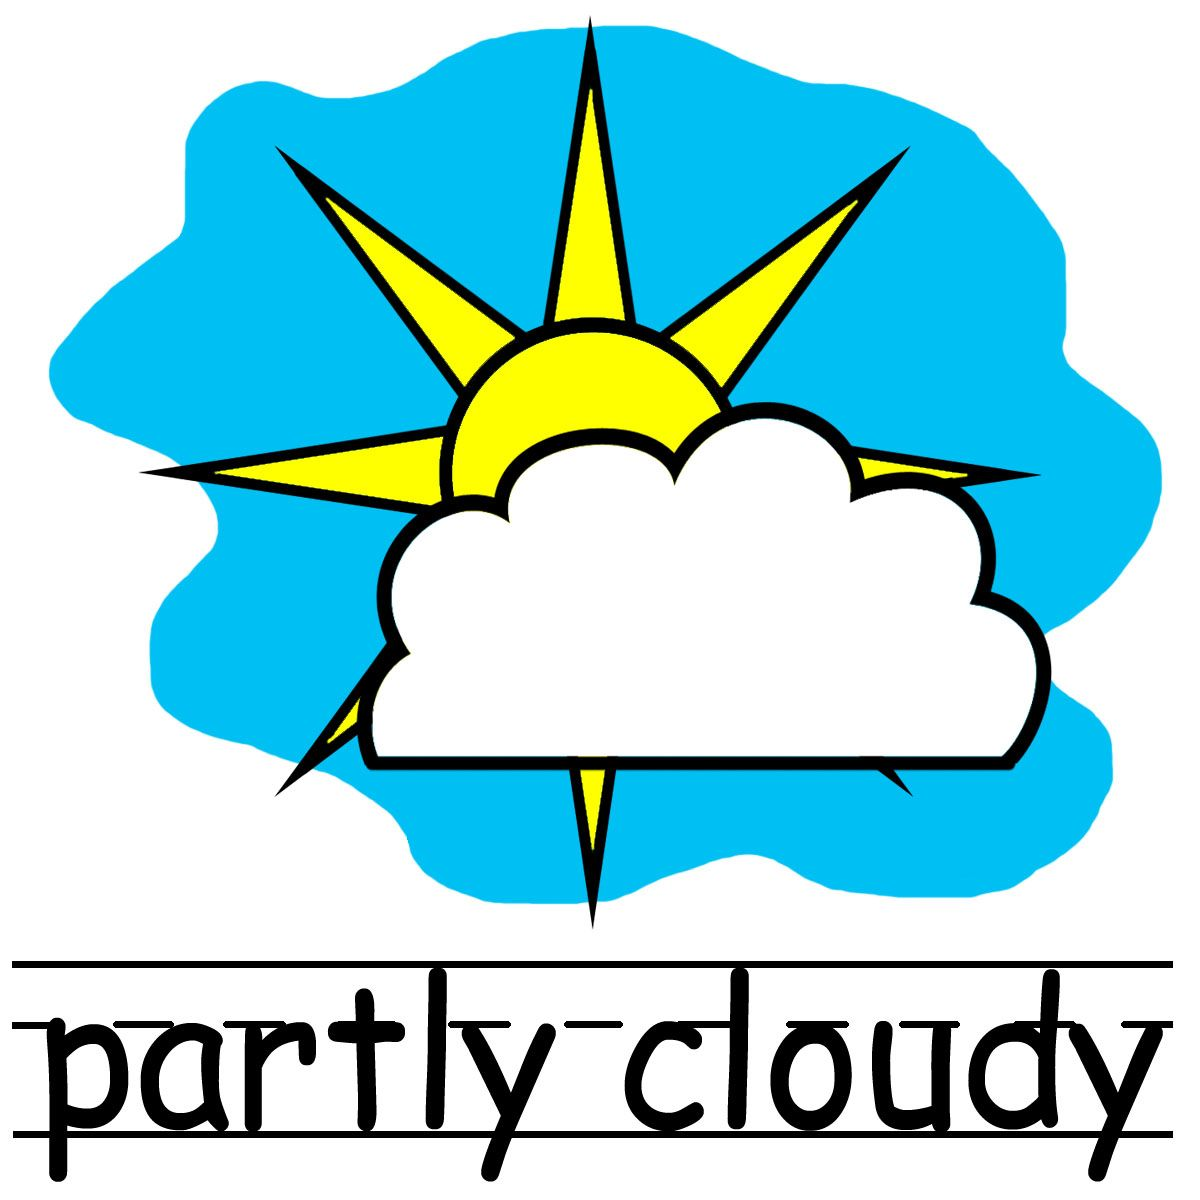 Cloudy clipart party. Graphics rain free images